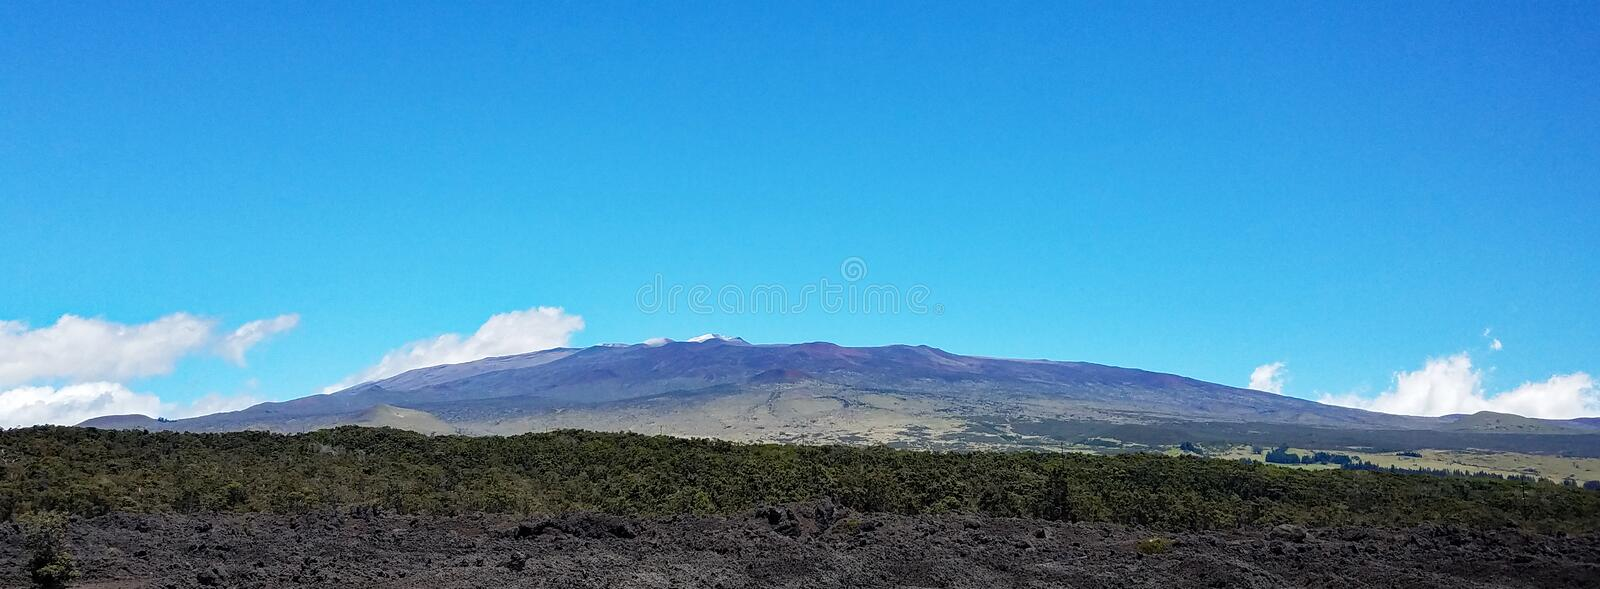 Snow-Capped Mauna Kea Volcano on a Clear Day stock photos